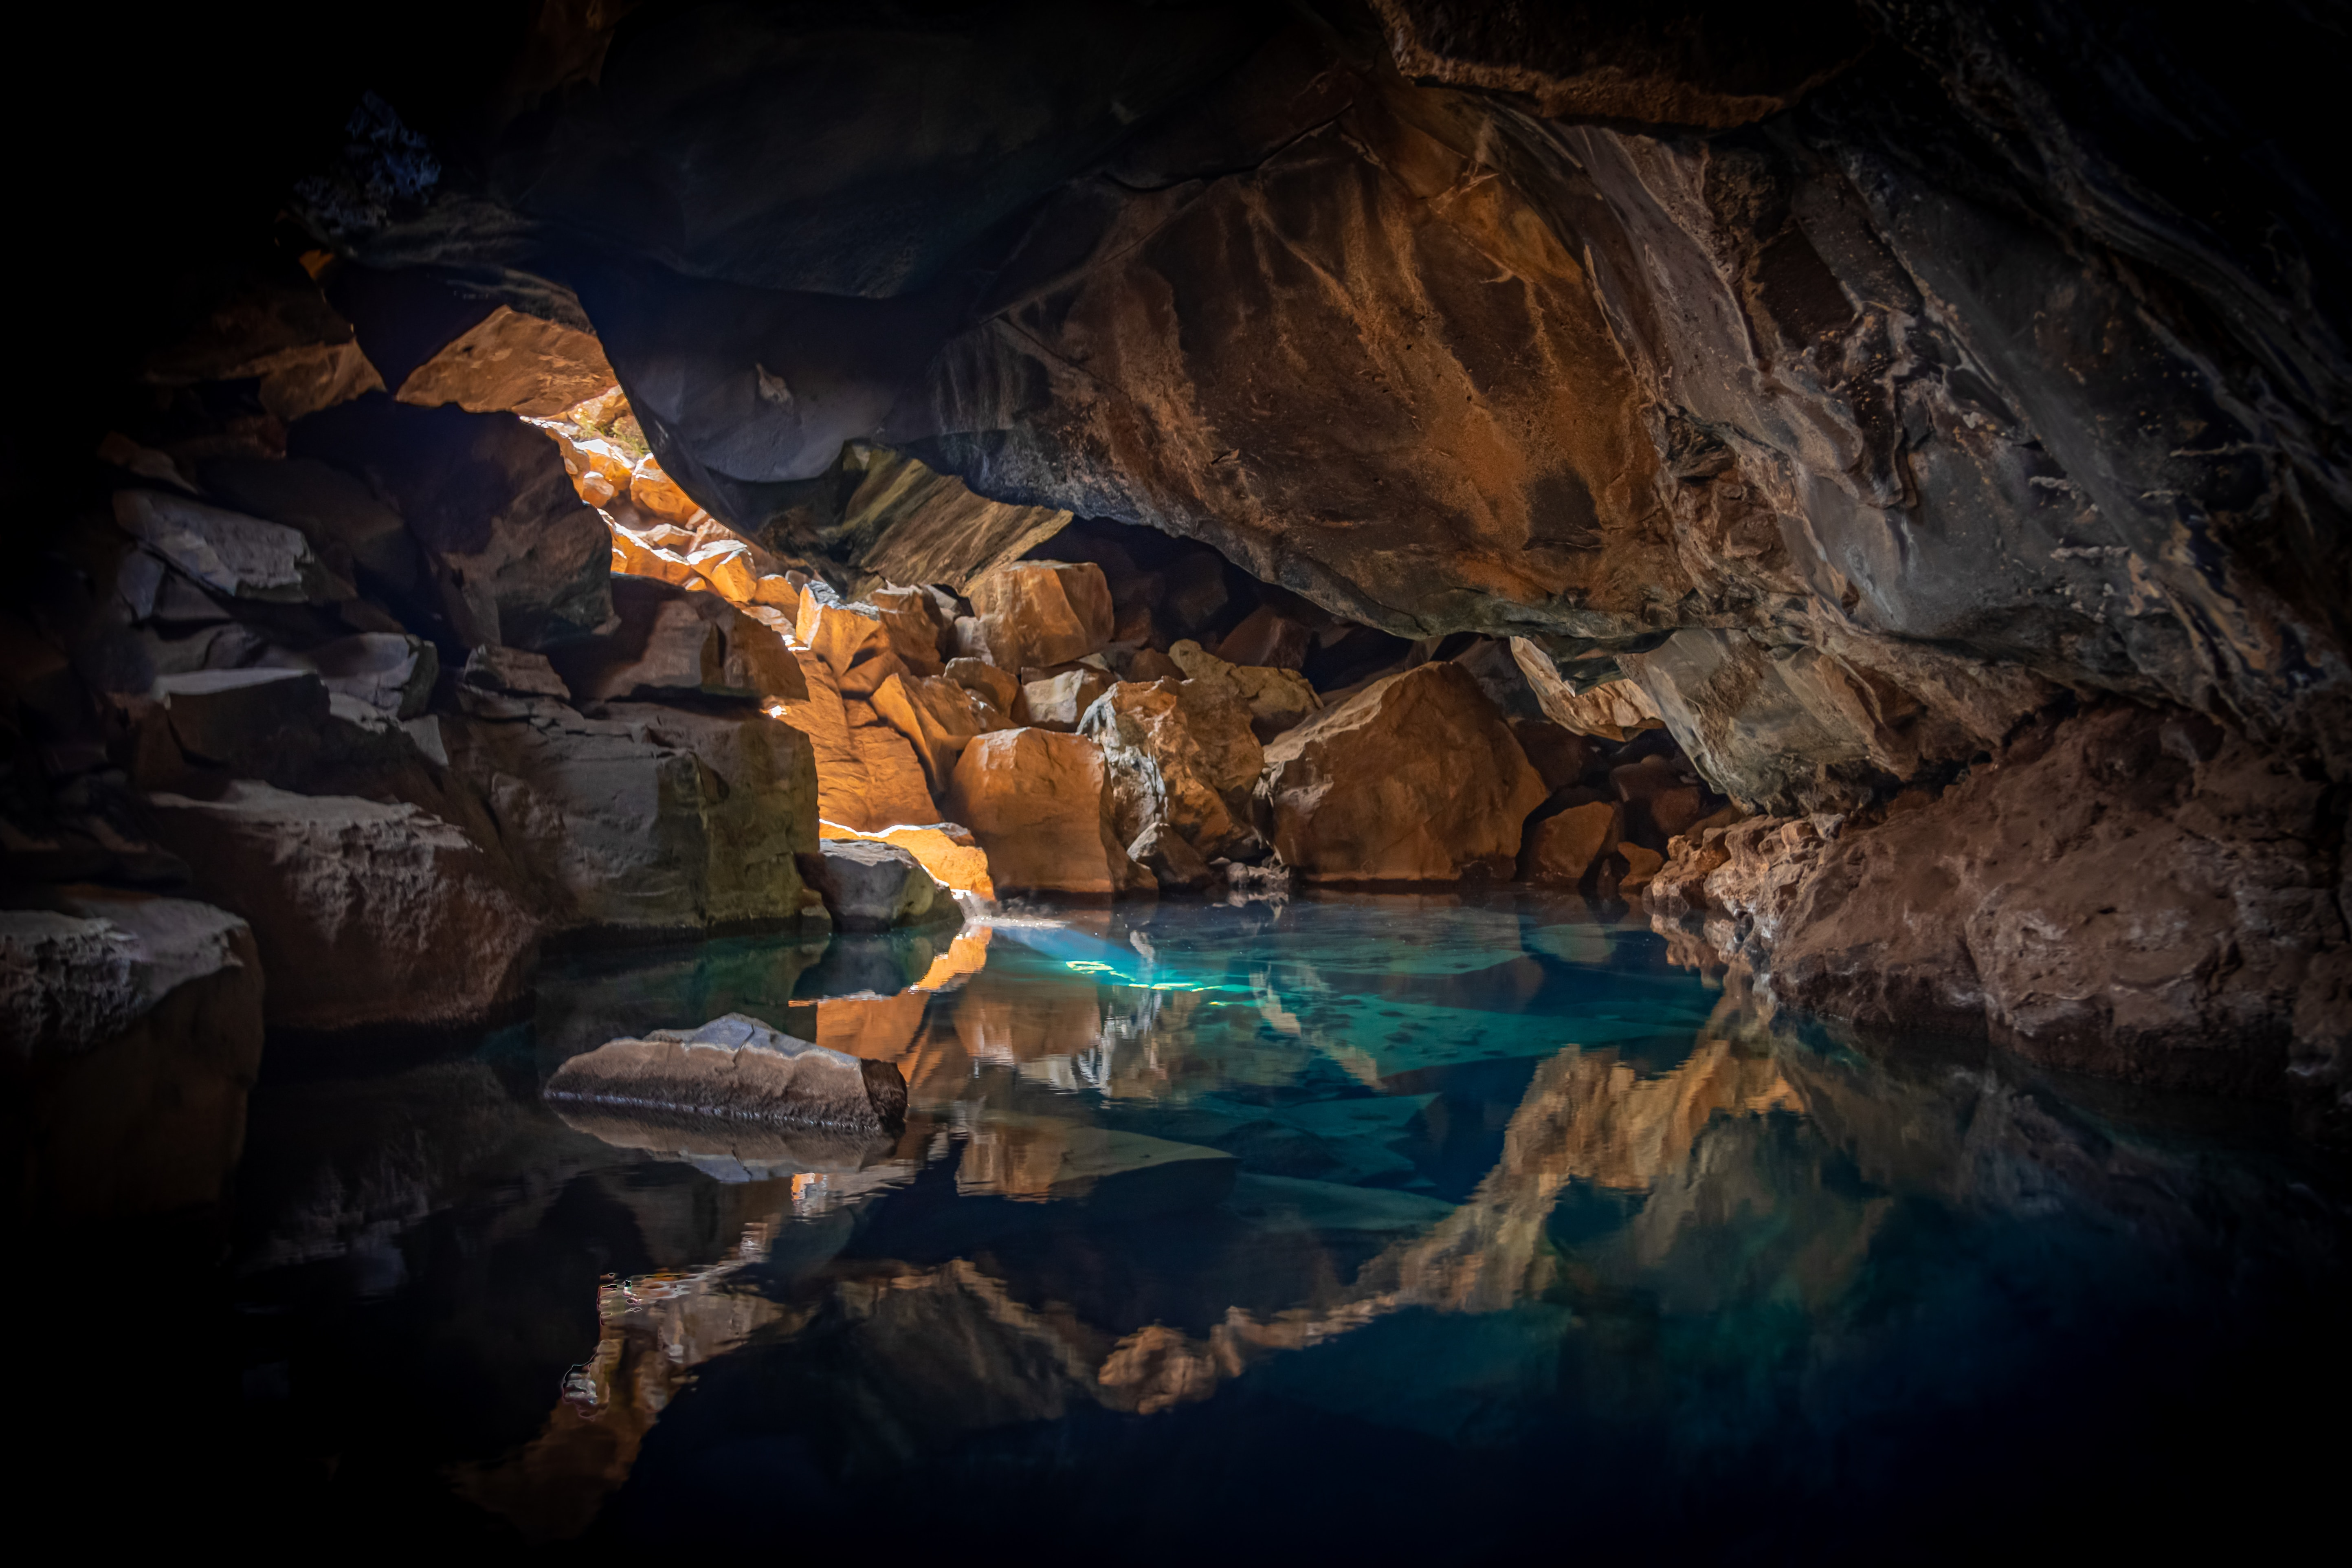 iceland cave surrouned with blue body of water 1574937754 - Iceland Cave Surrouned With Blue Body Of Water -